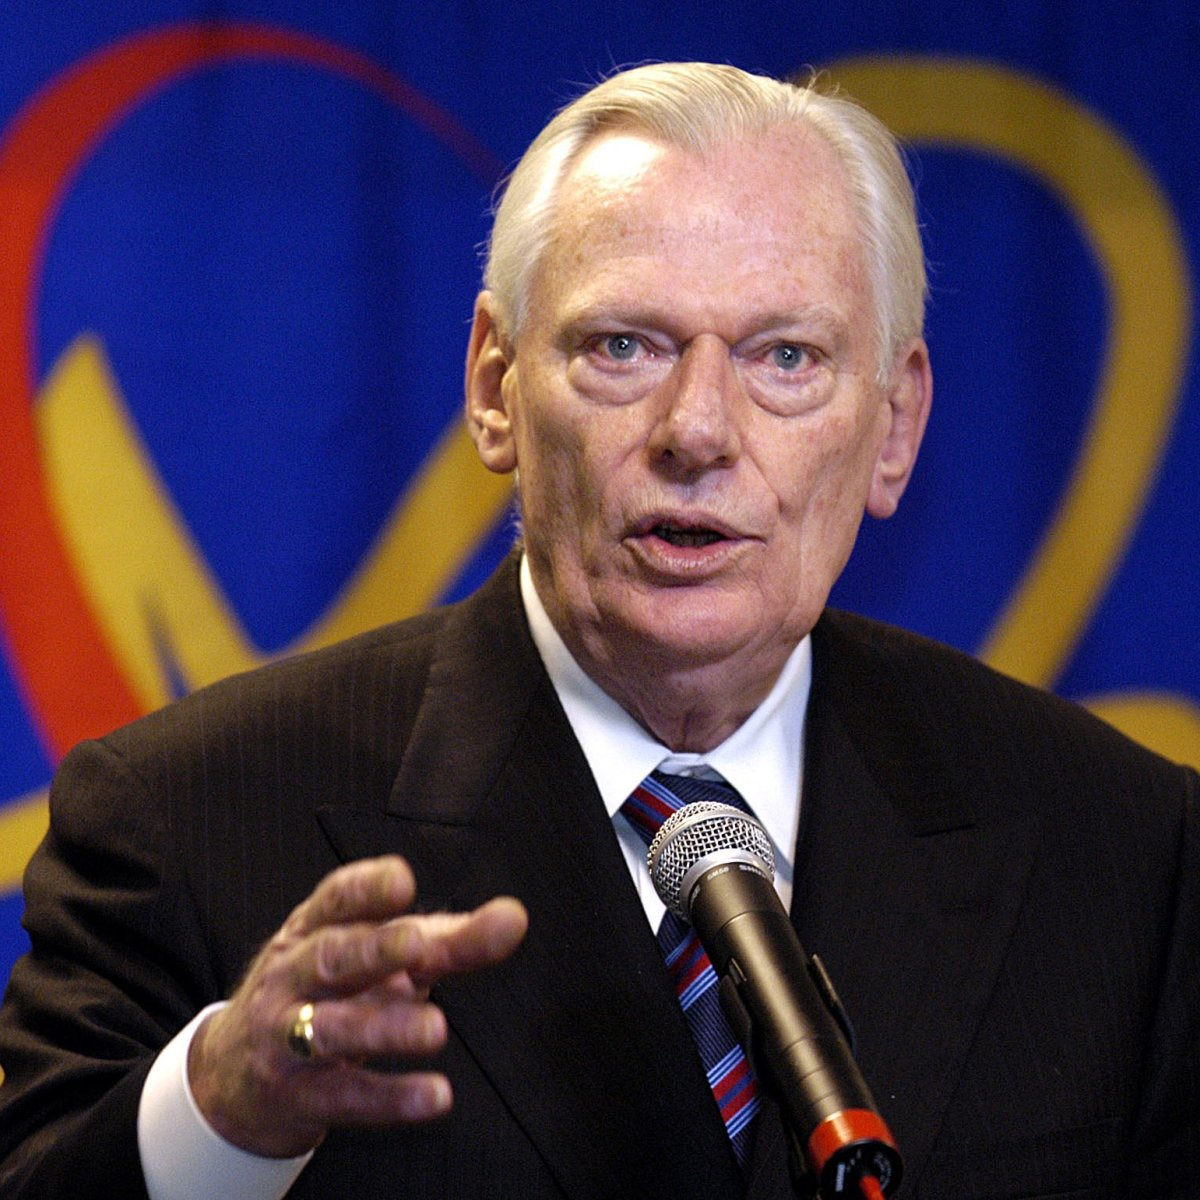 The Founder Of Southwest Airlines, Herb Kelleher, Has Died photo